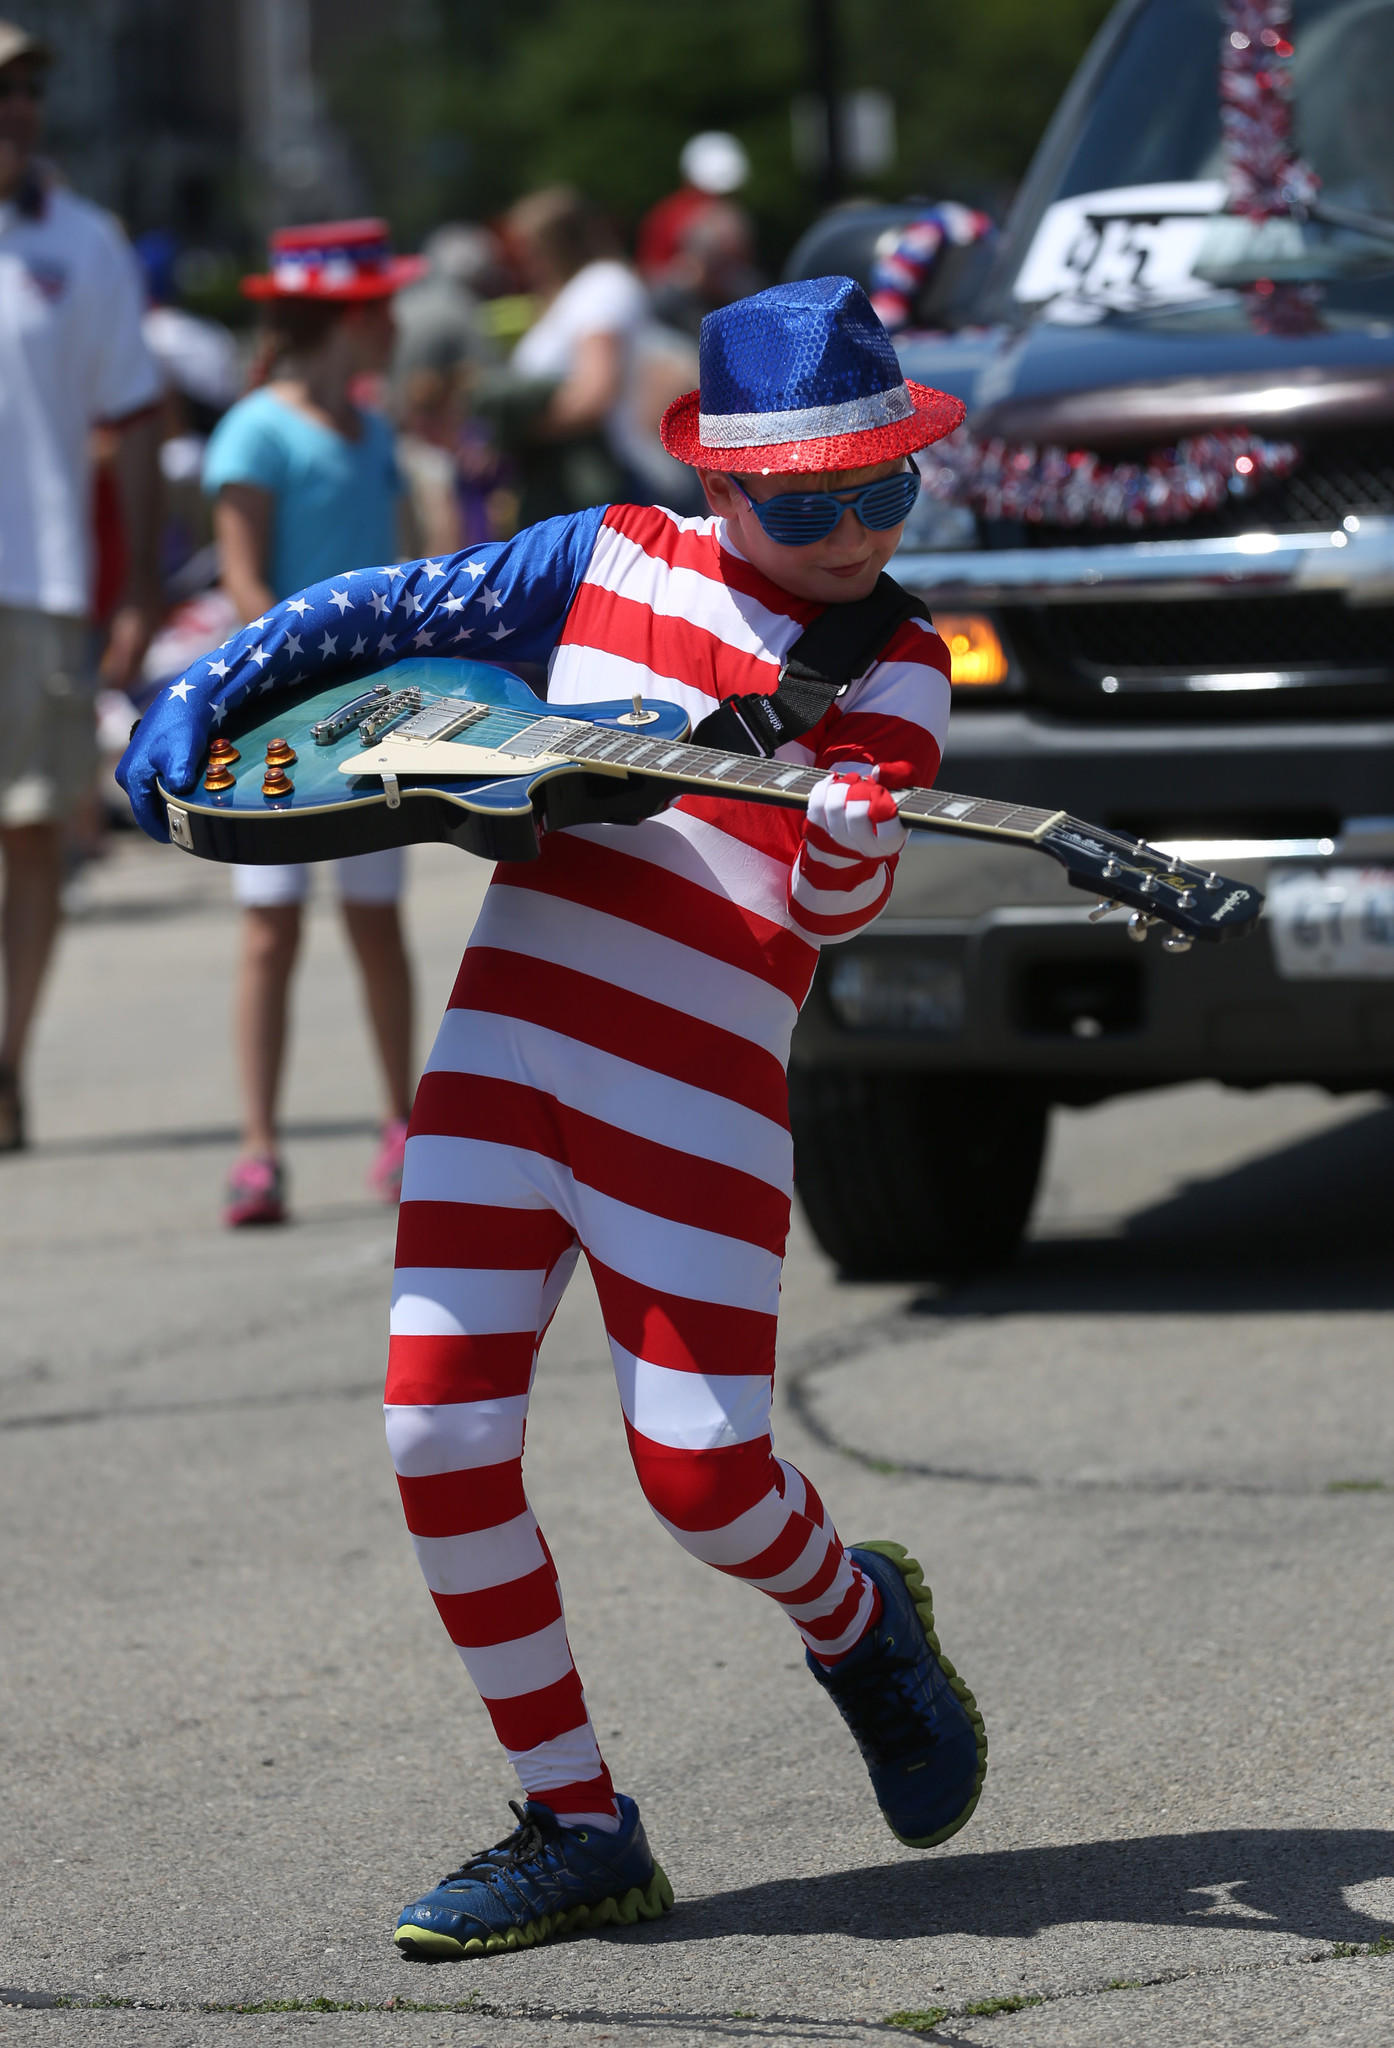 Aidan Dufty, 10, dresses appropriately for his participation in the 4th of July parade in Wheaton, Friday July 4, 2014. (Abel Uribe/ Chicago Tribune)